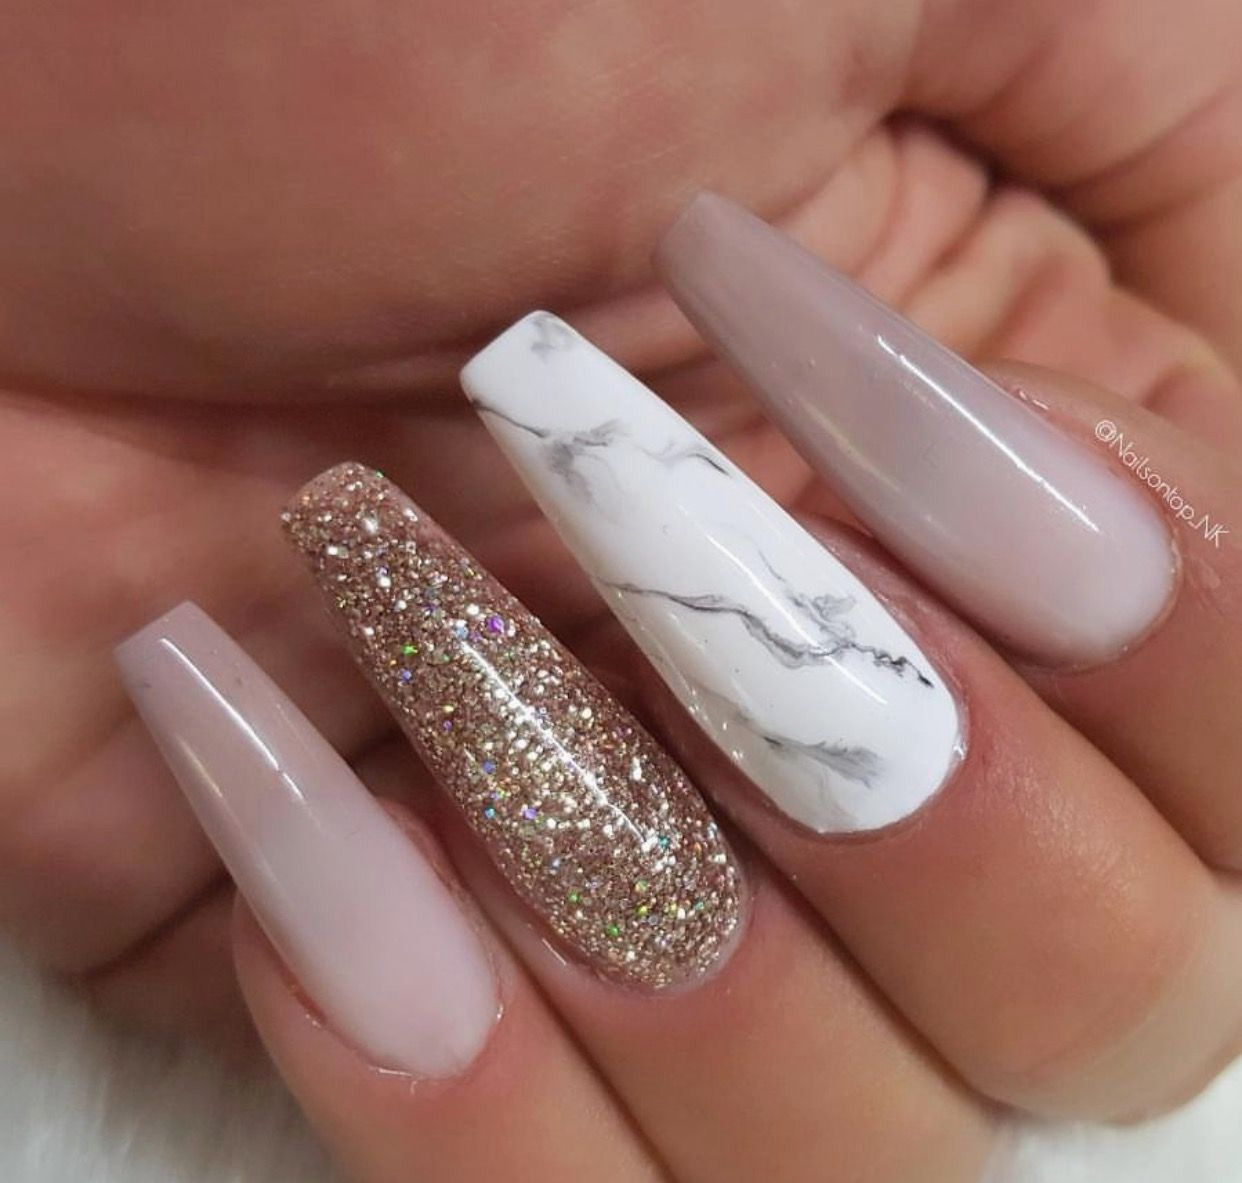 20 False Nails Summer 2016 In 2020 Unique Acrylic Nails Acrylic Nails Coffin Glitter Shiny Nails Designs